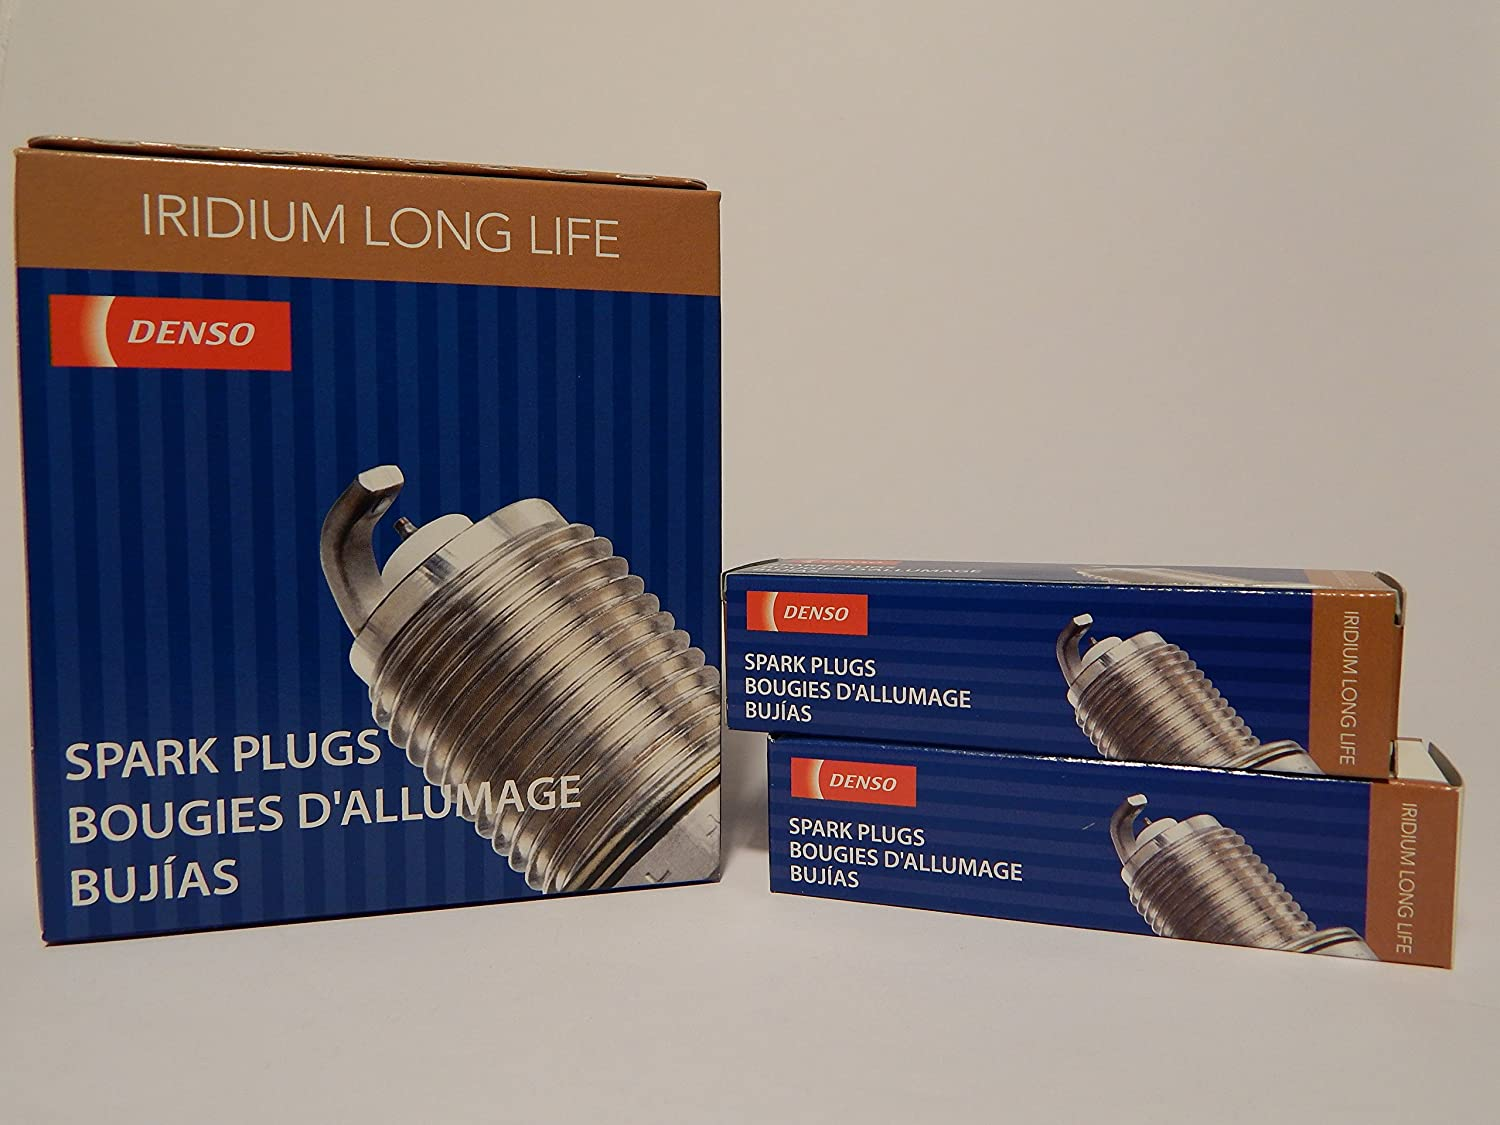 Amazon.com: DENSO # 3324 Iridium LONG LIFE Spark Plugs -- SK16R11 ----- 6 PCS * NEW *: Automotive